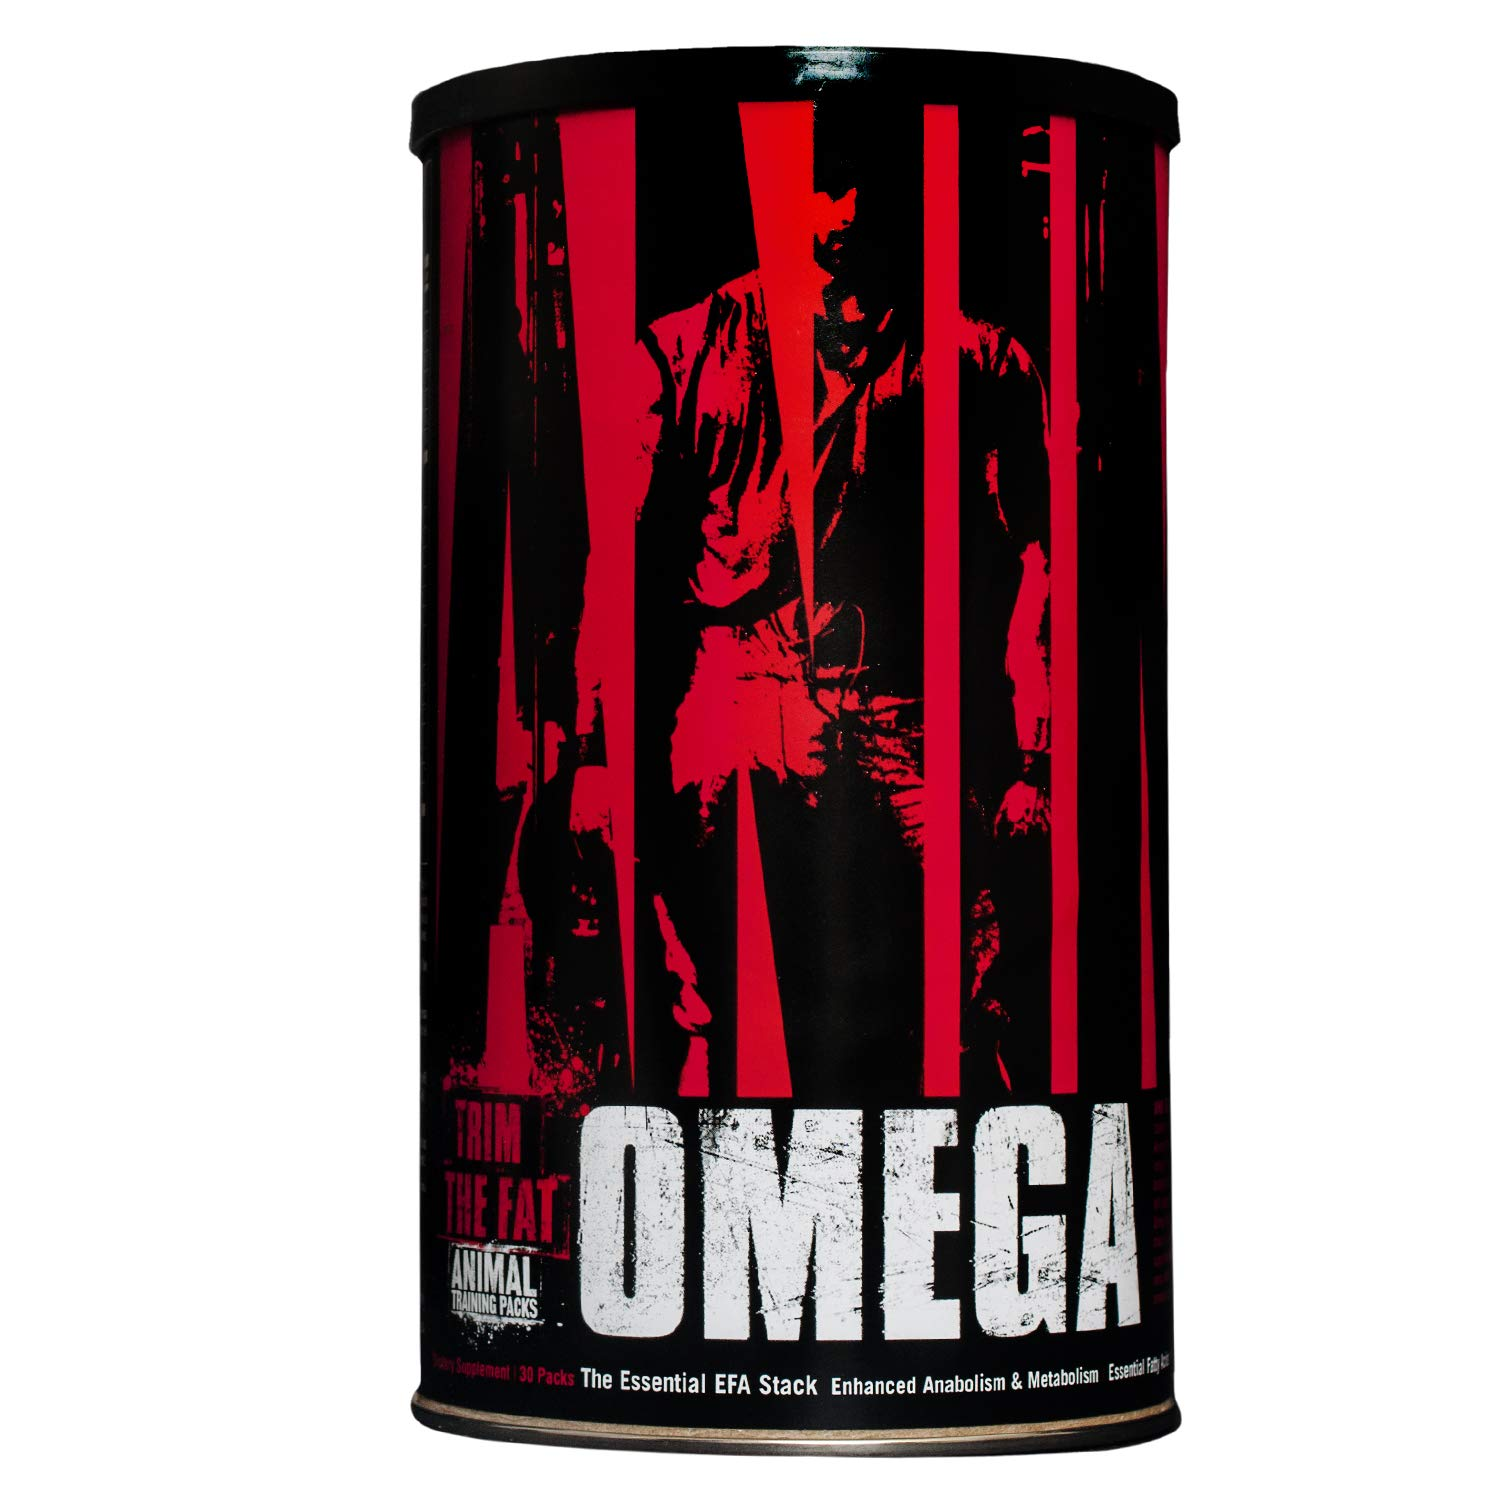 Animal Omega - Omega 3 6 Supplement - Fish Oil, Flaxseed Oil, Salmon Oil, Cod Liver, Herring, and more - 10 Sources of Omegas and EFAs - Full dose of EPA, DHA, CLA + Absorption Complex - 30 Day Pack by Animal